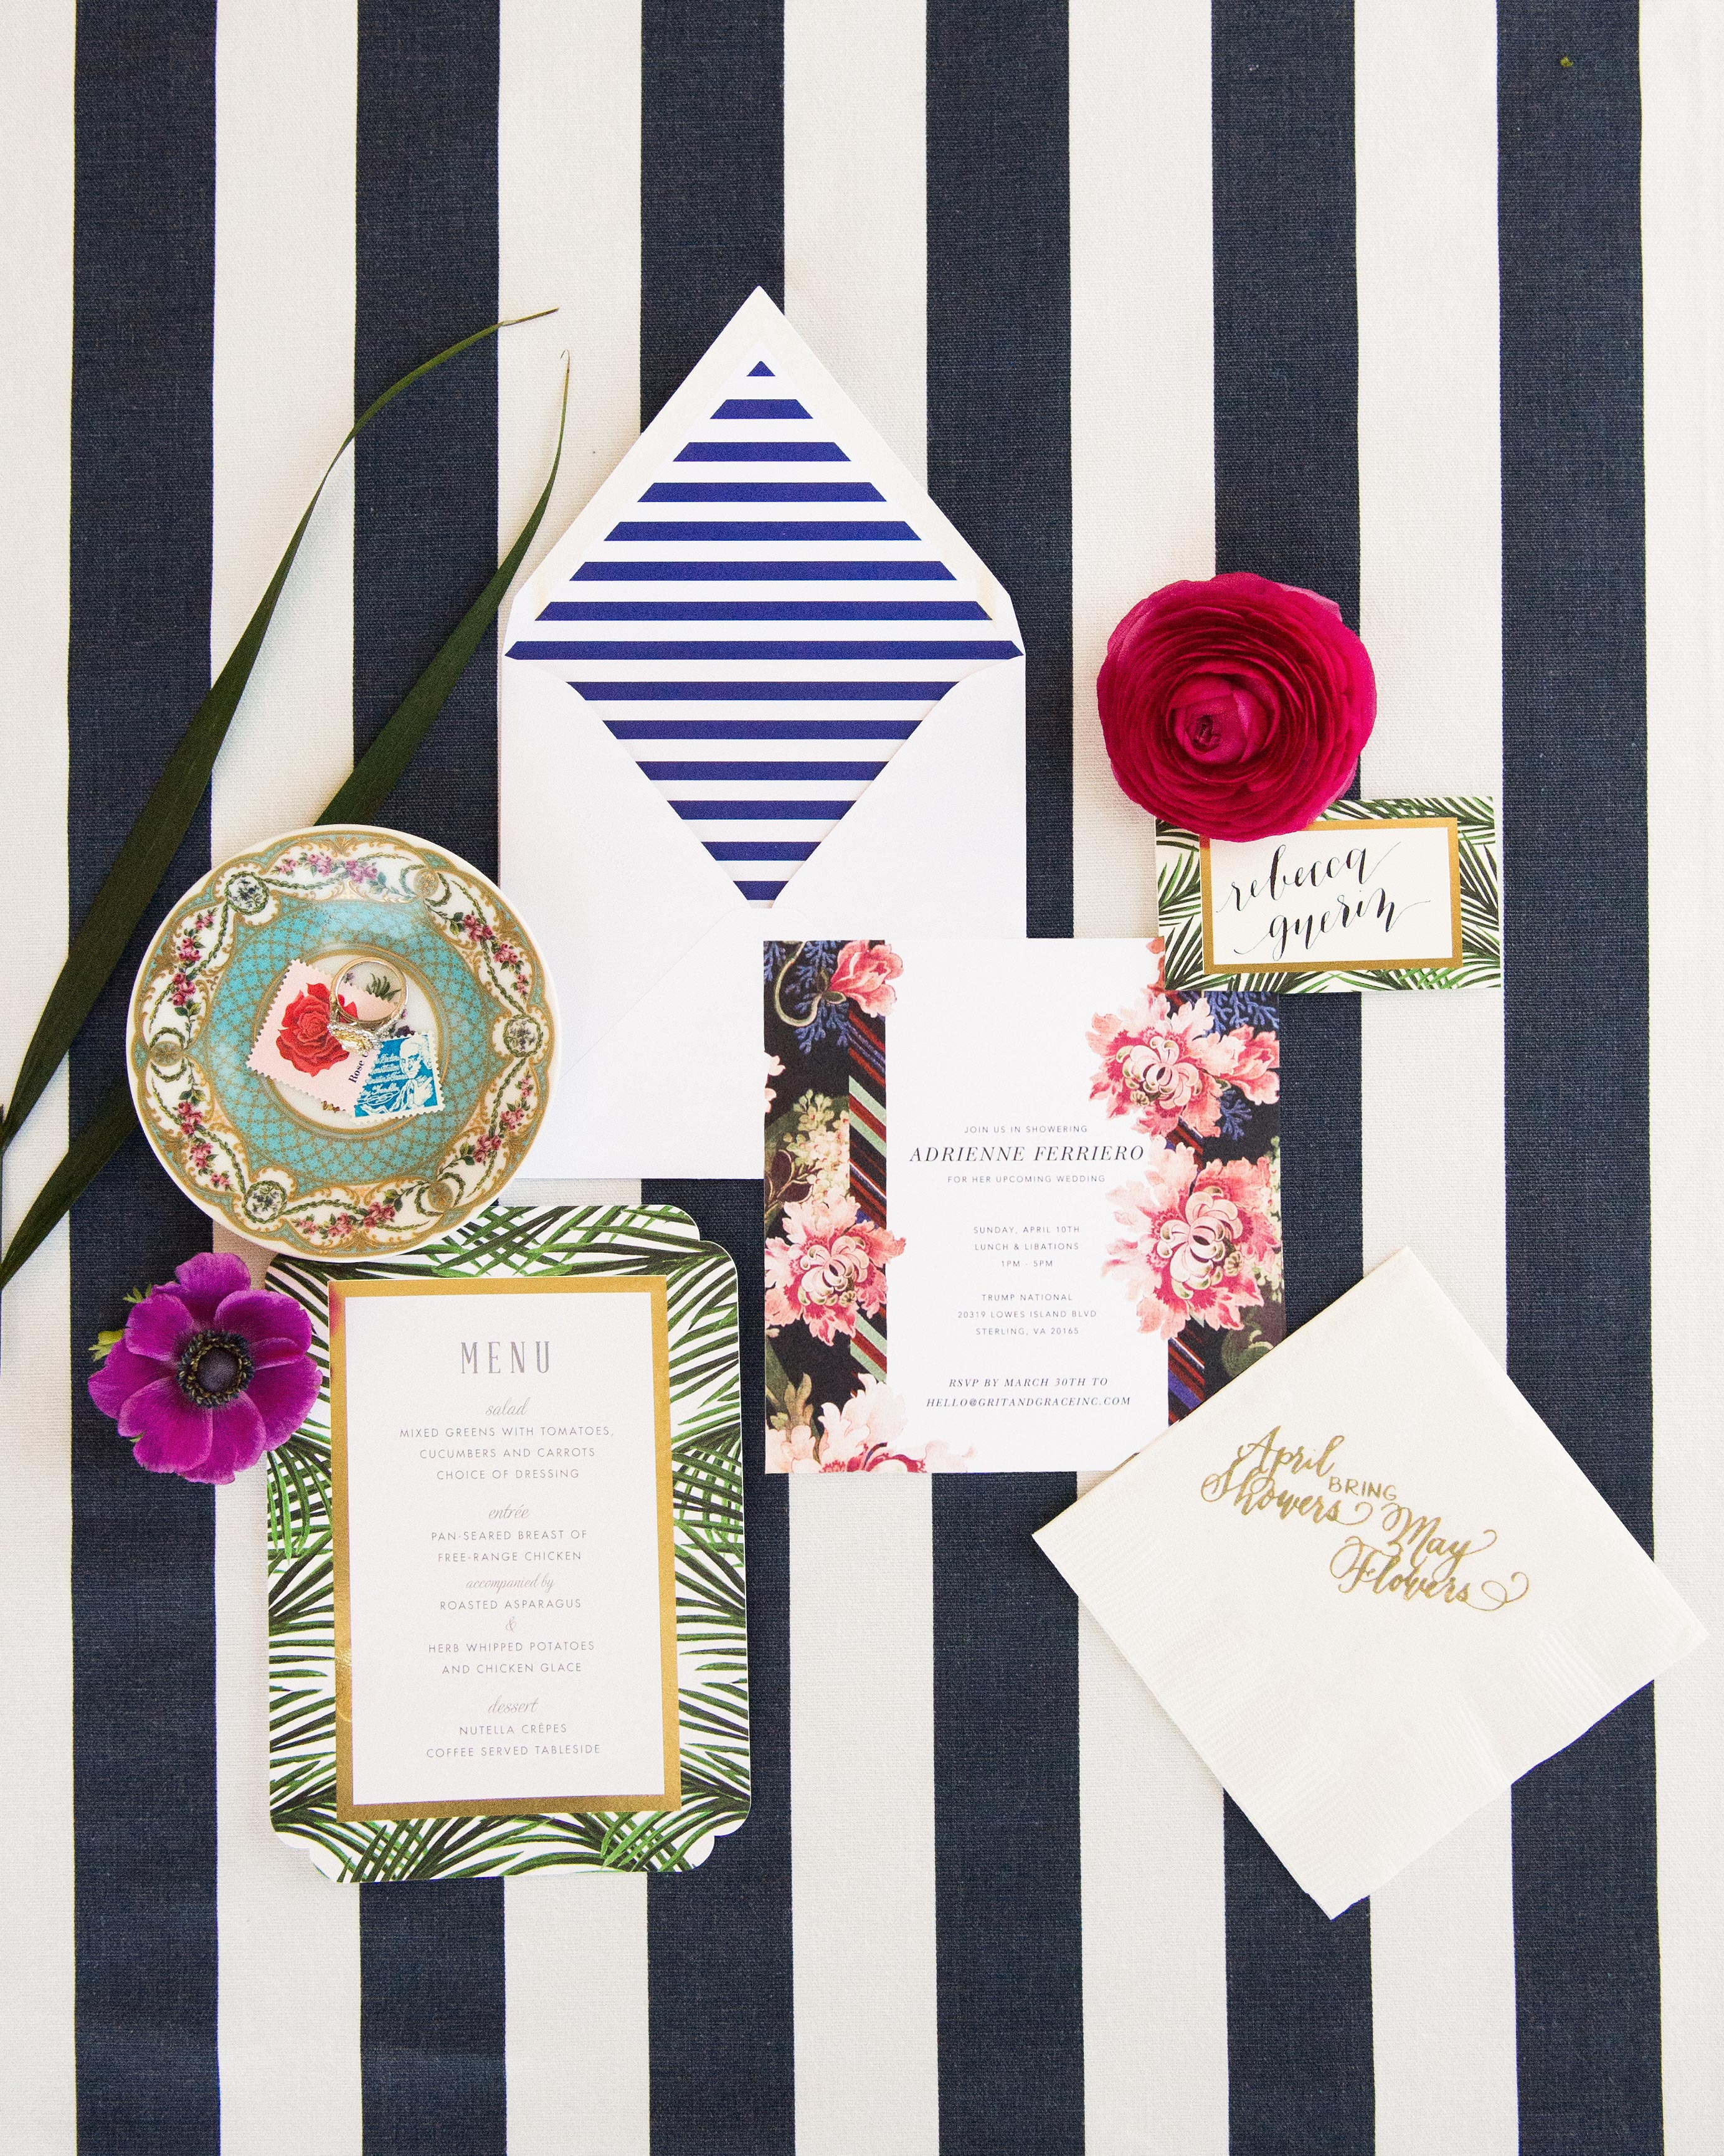 adrienne-bridal-shower-stationery-1-6134175-0716.jpg